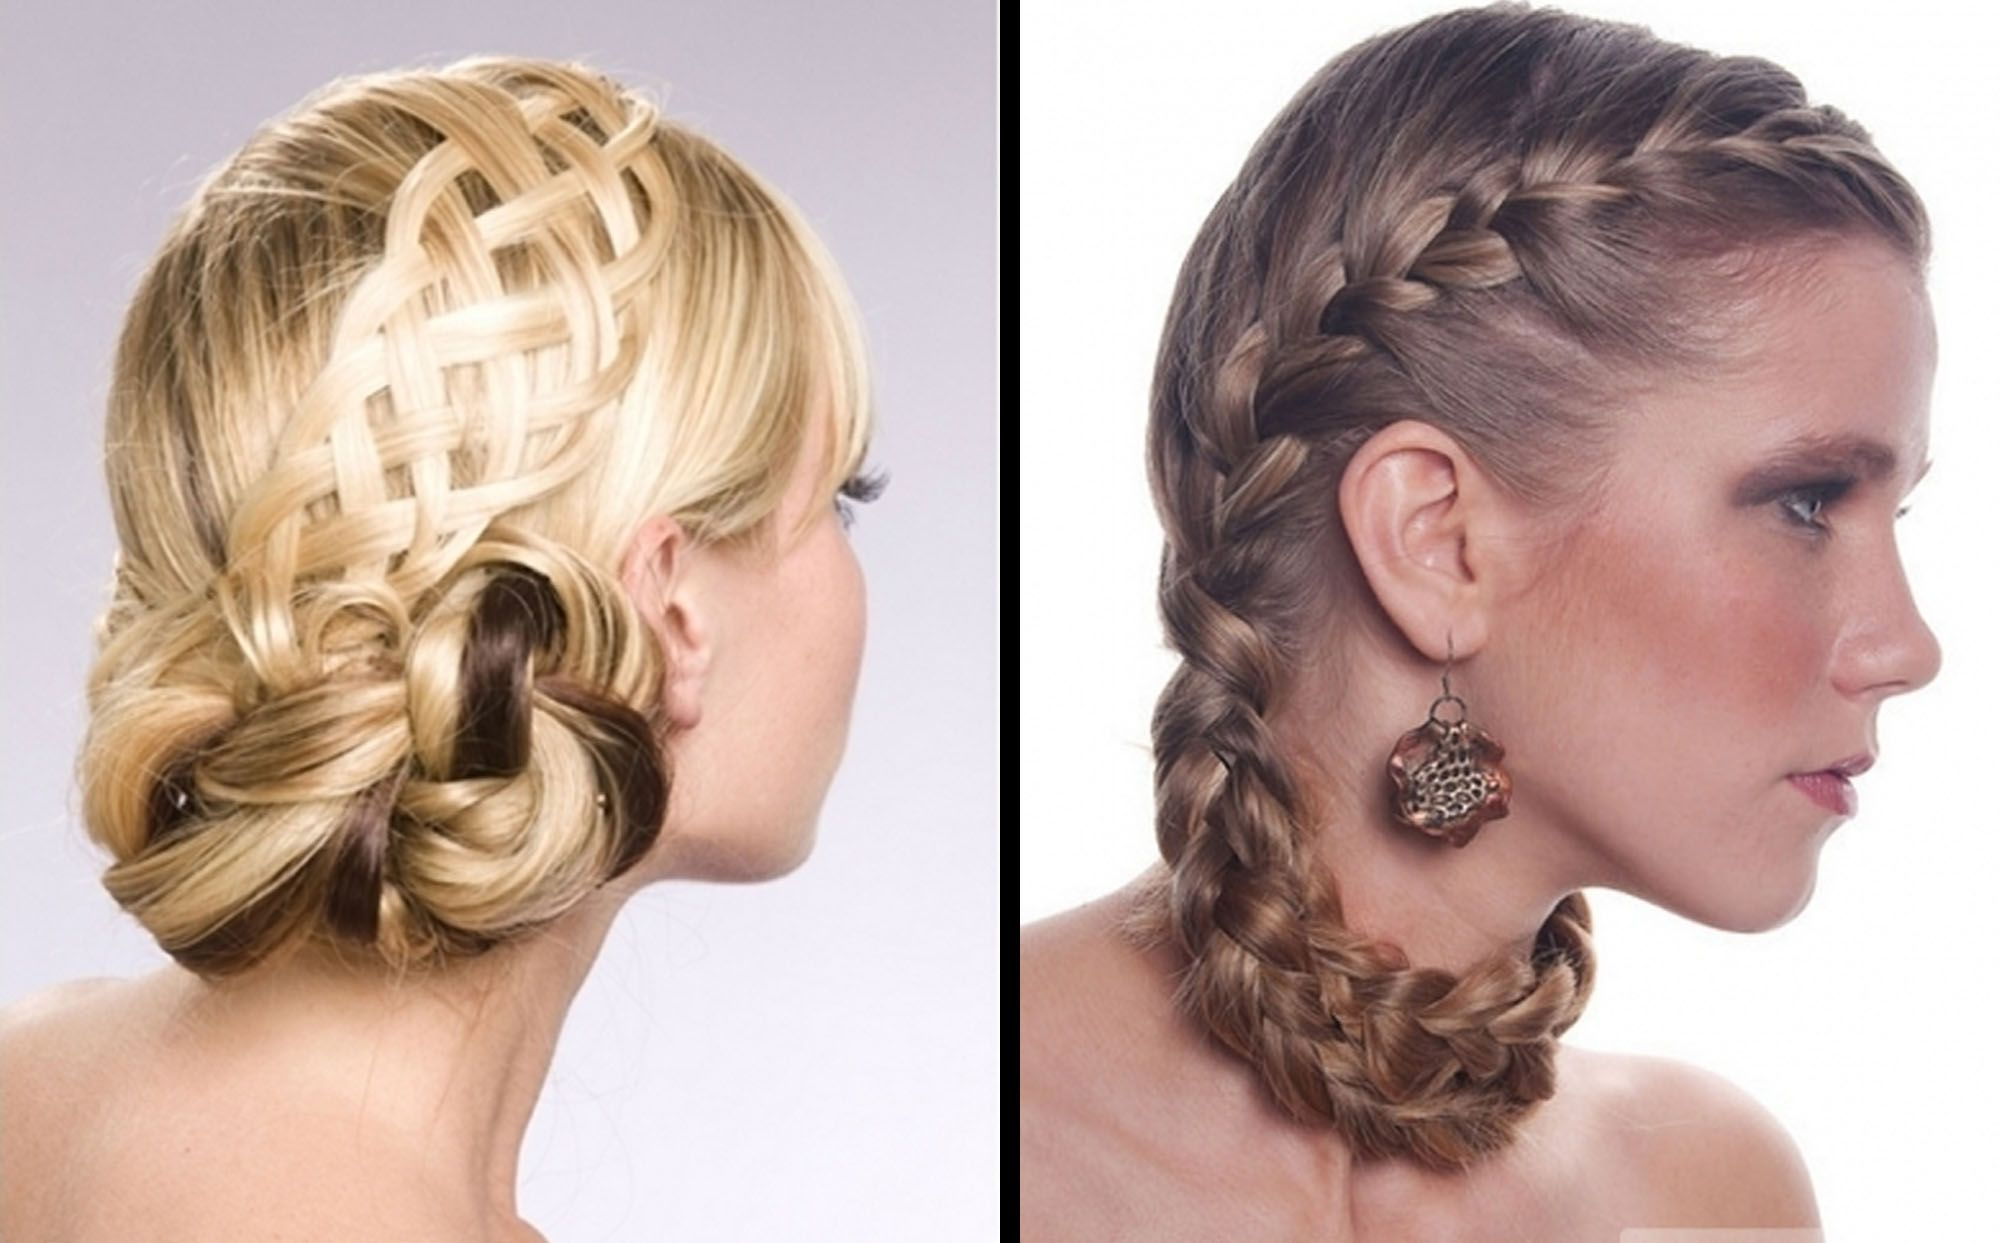 Miraculous 1000 Images About Hair Styles On Pinterest Wedding Hairstyles Hairstyles For Men Maxibearus